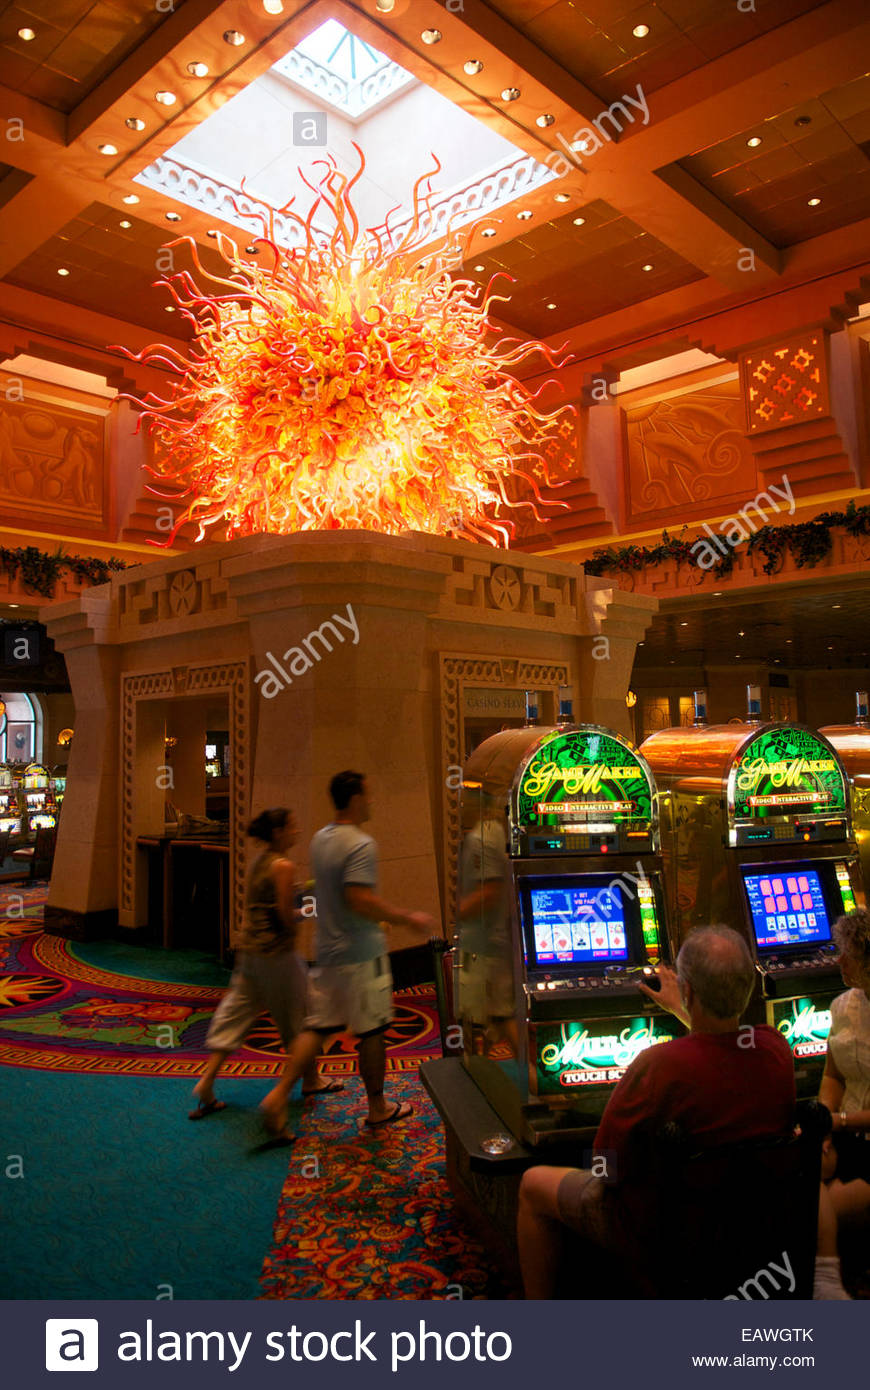 Inside a casino in Atlantis Resort in the Bahamas. - Stock Image